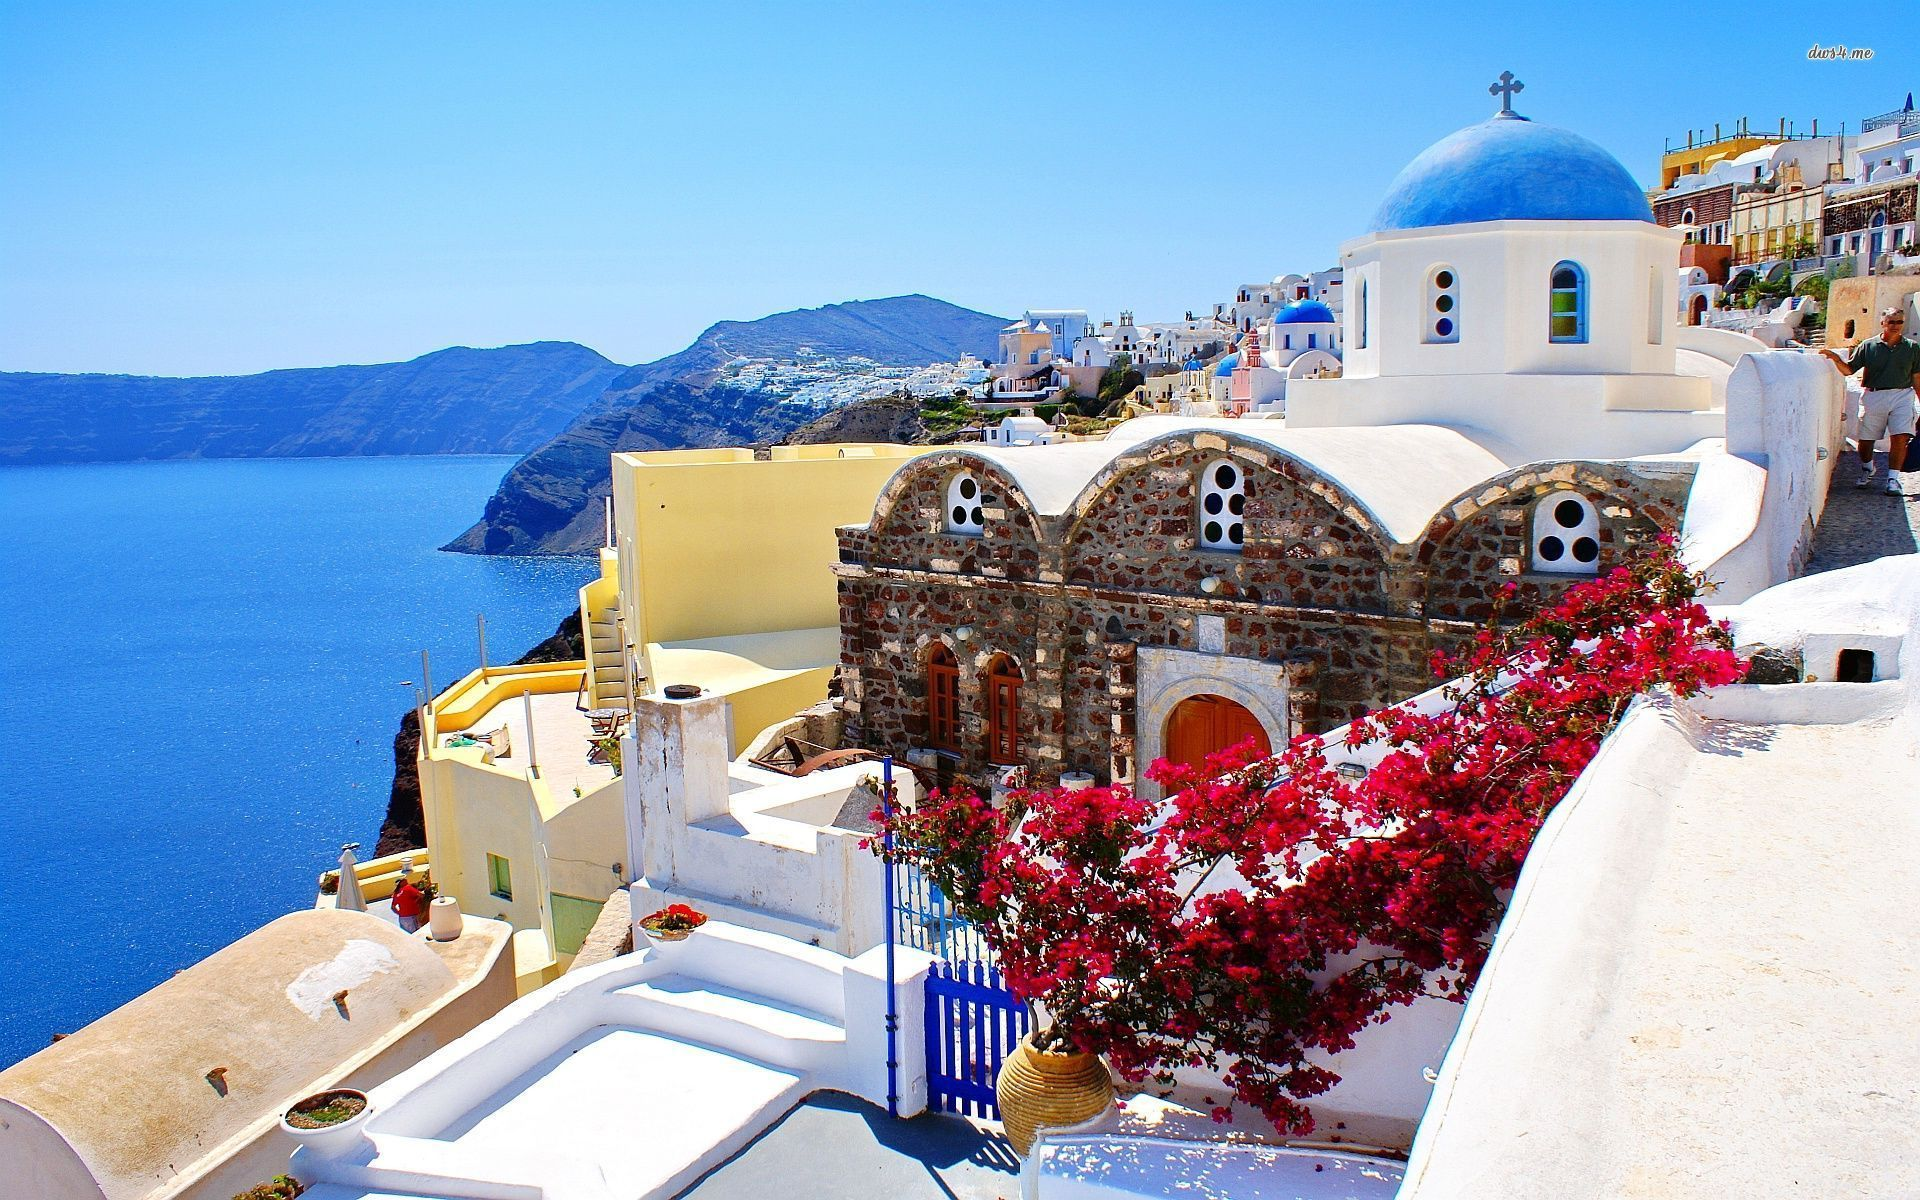 Santorini Greece Wallpaper   Beach Wallpapers   22173 Greece 1920x1200